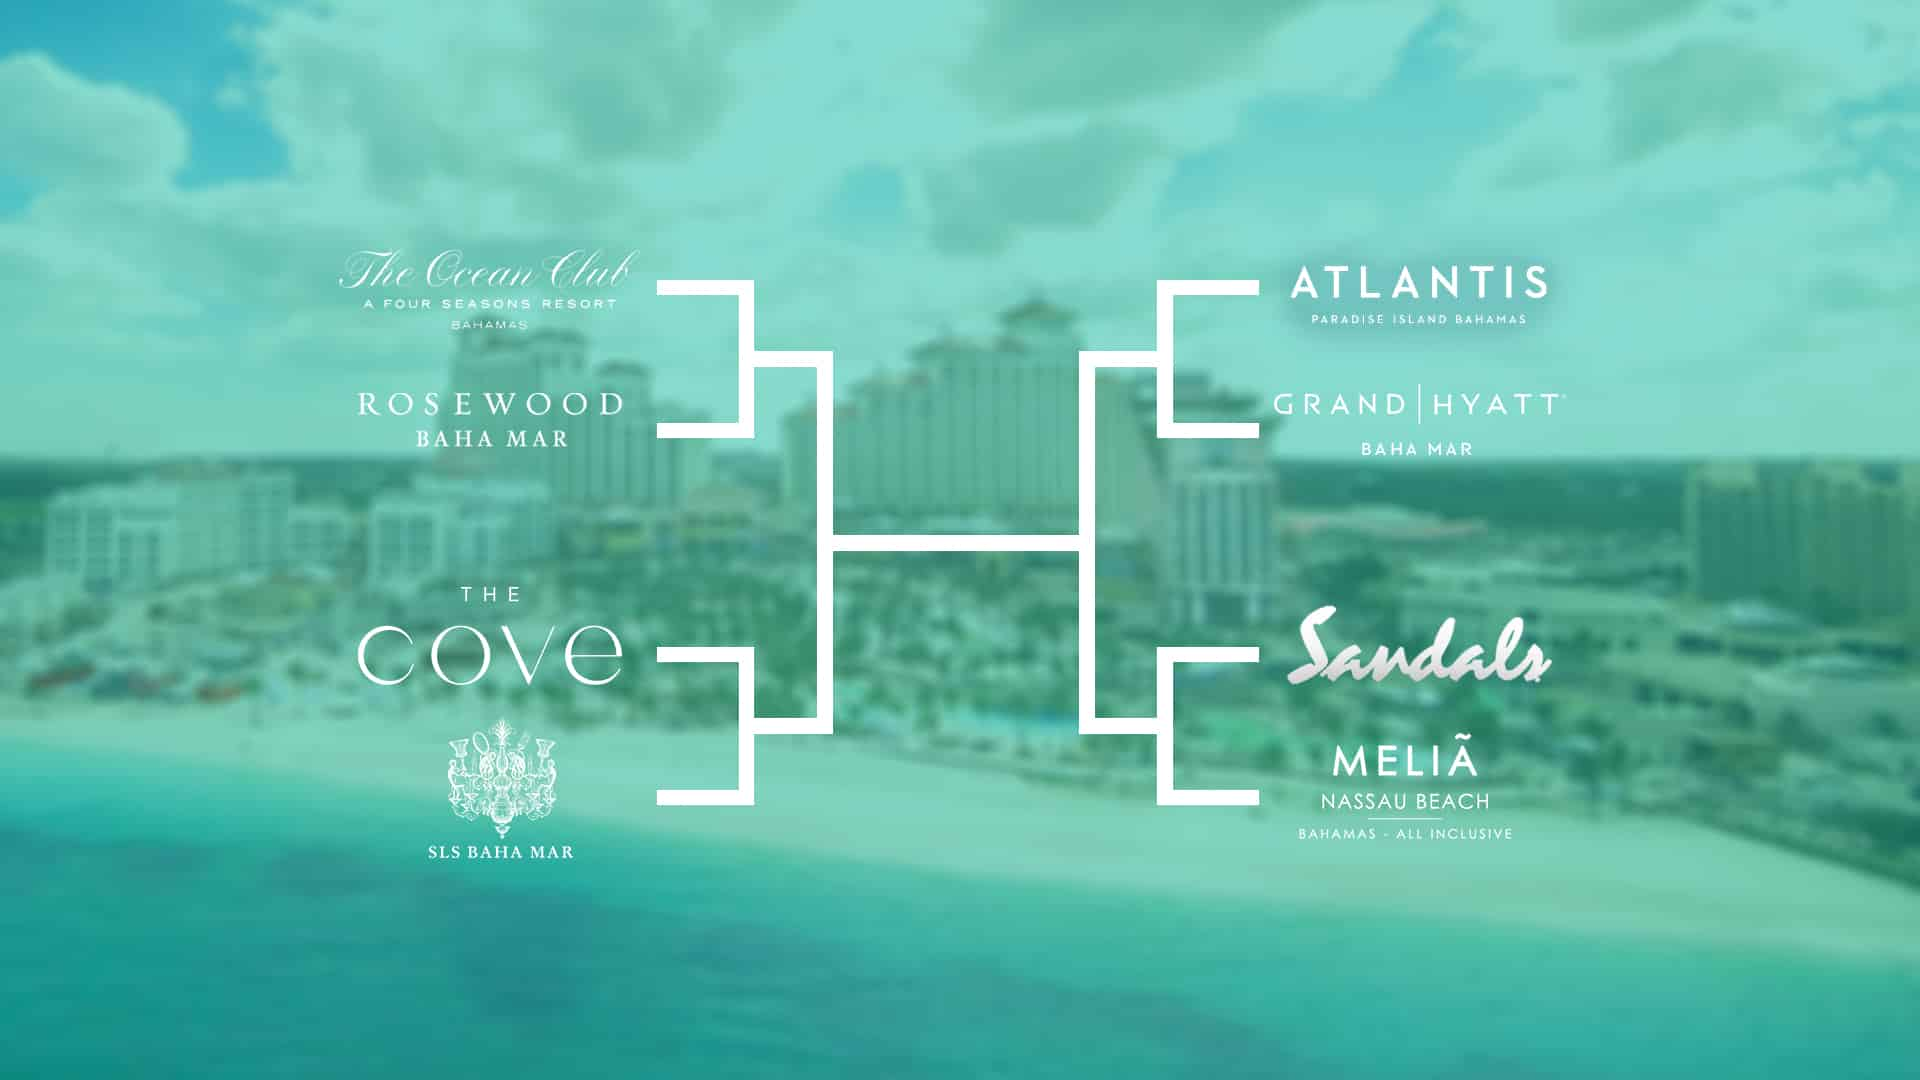 Incentive Trip Hotels: Bahama Playoffs